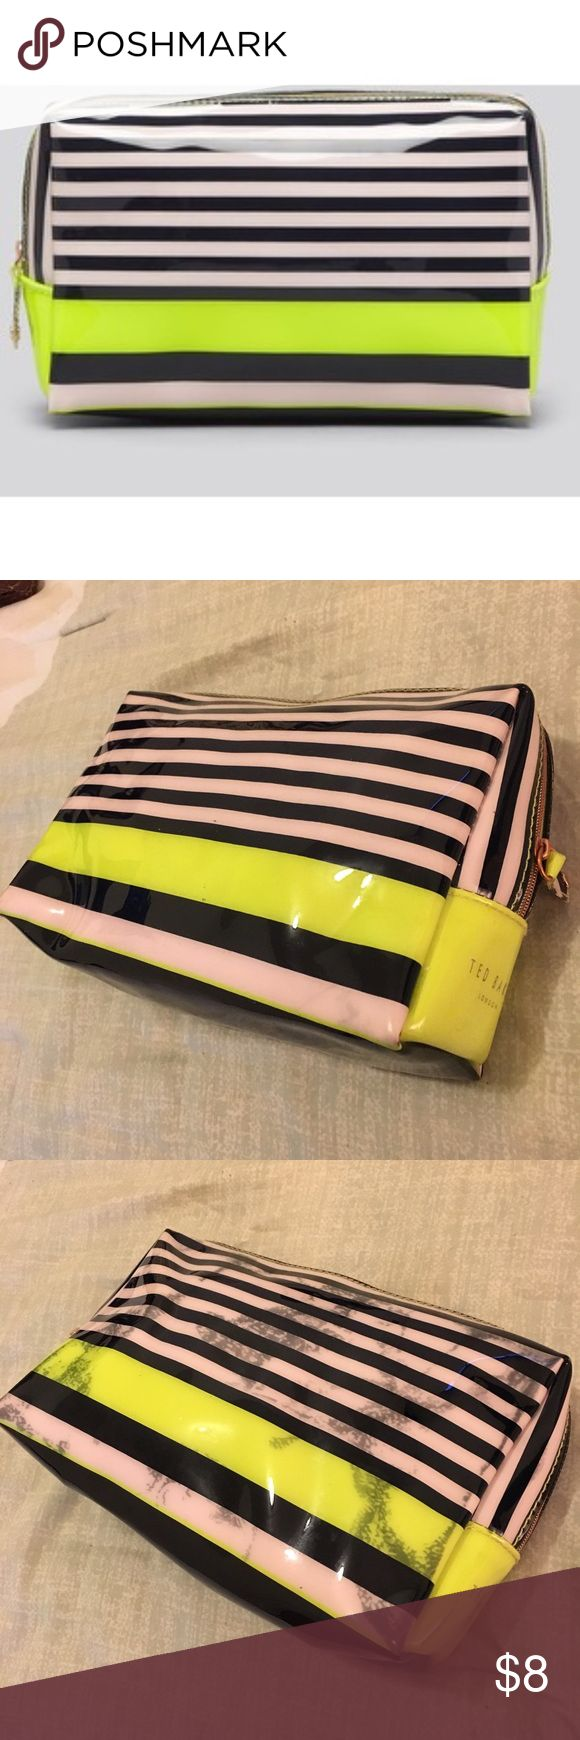 Ted Baker Striped Cosmetic Case Ted Baker Striped Cosmetic Case. Colors are Pale Pink, Navy and Neon Green. Item as pictured. Final sale. Ted Baker Bags Cosmetic Bags & Cases